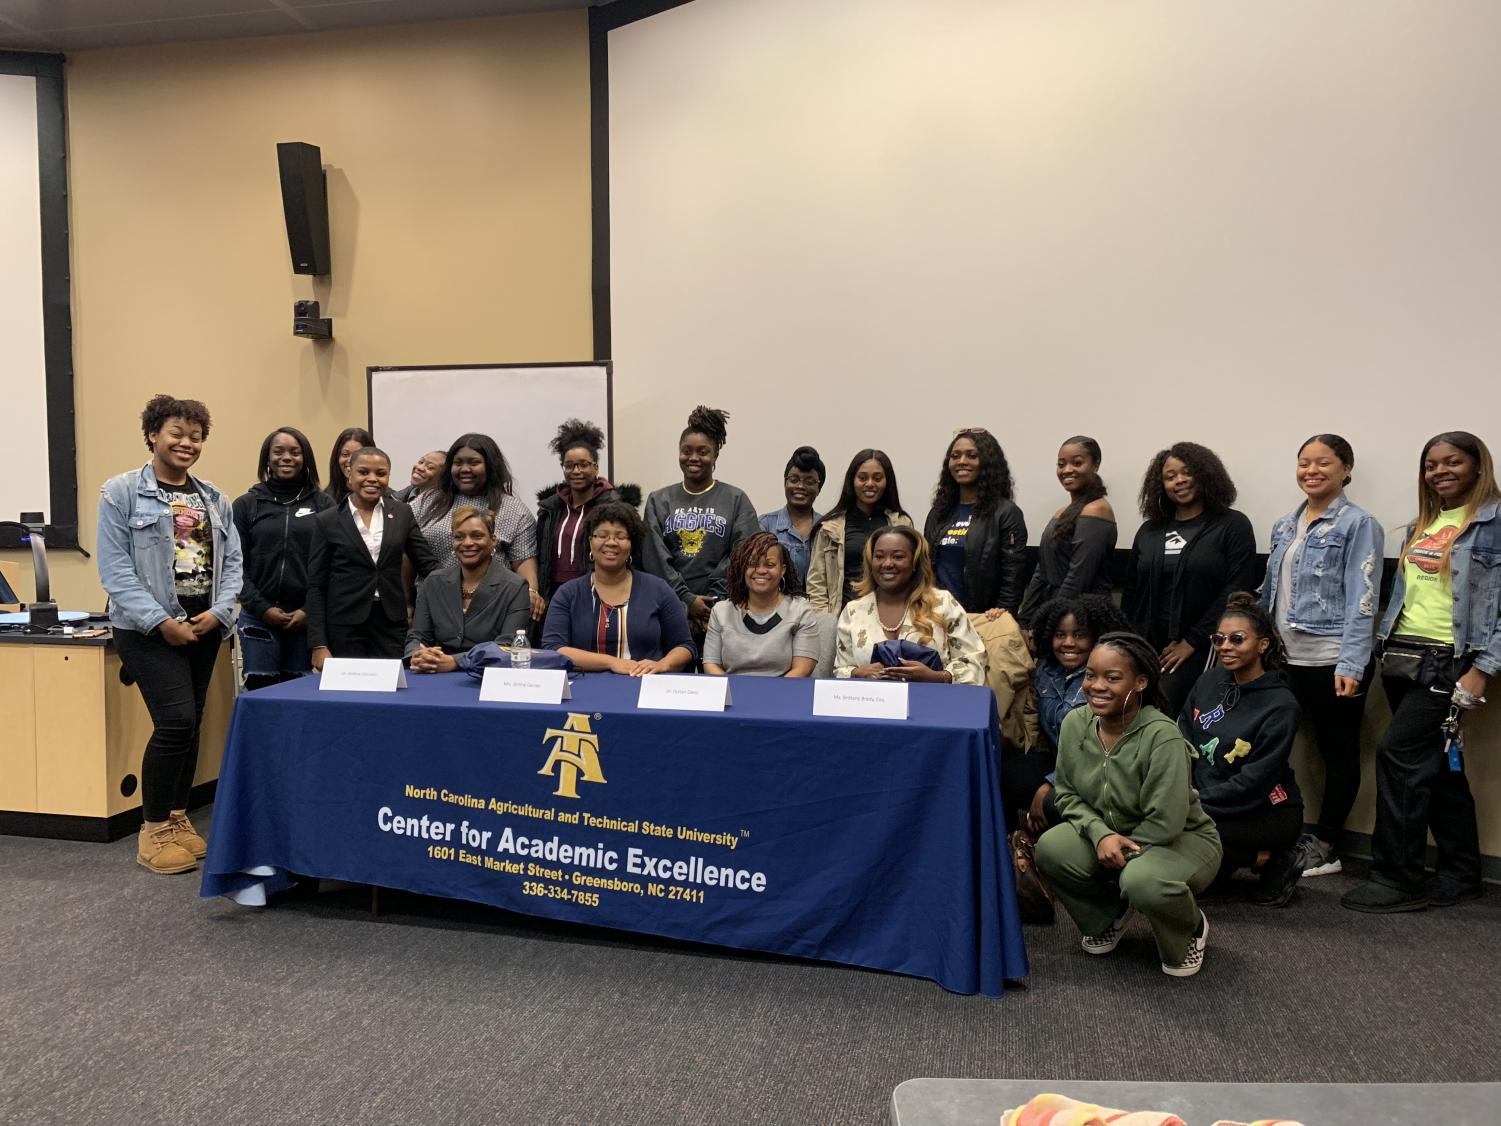 Alumnae and participants pose for a photo after the discussion.